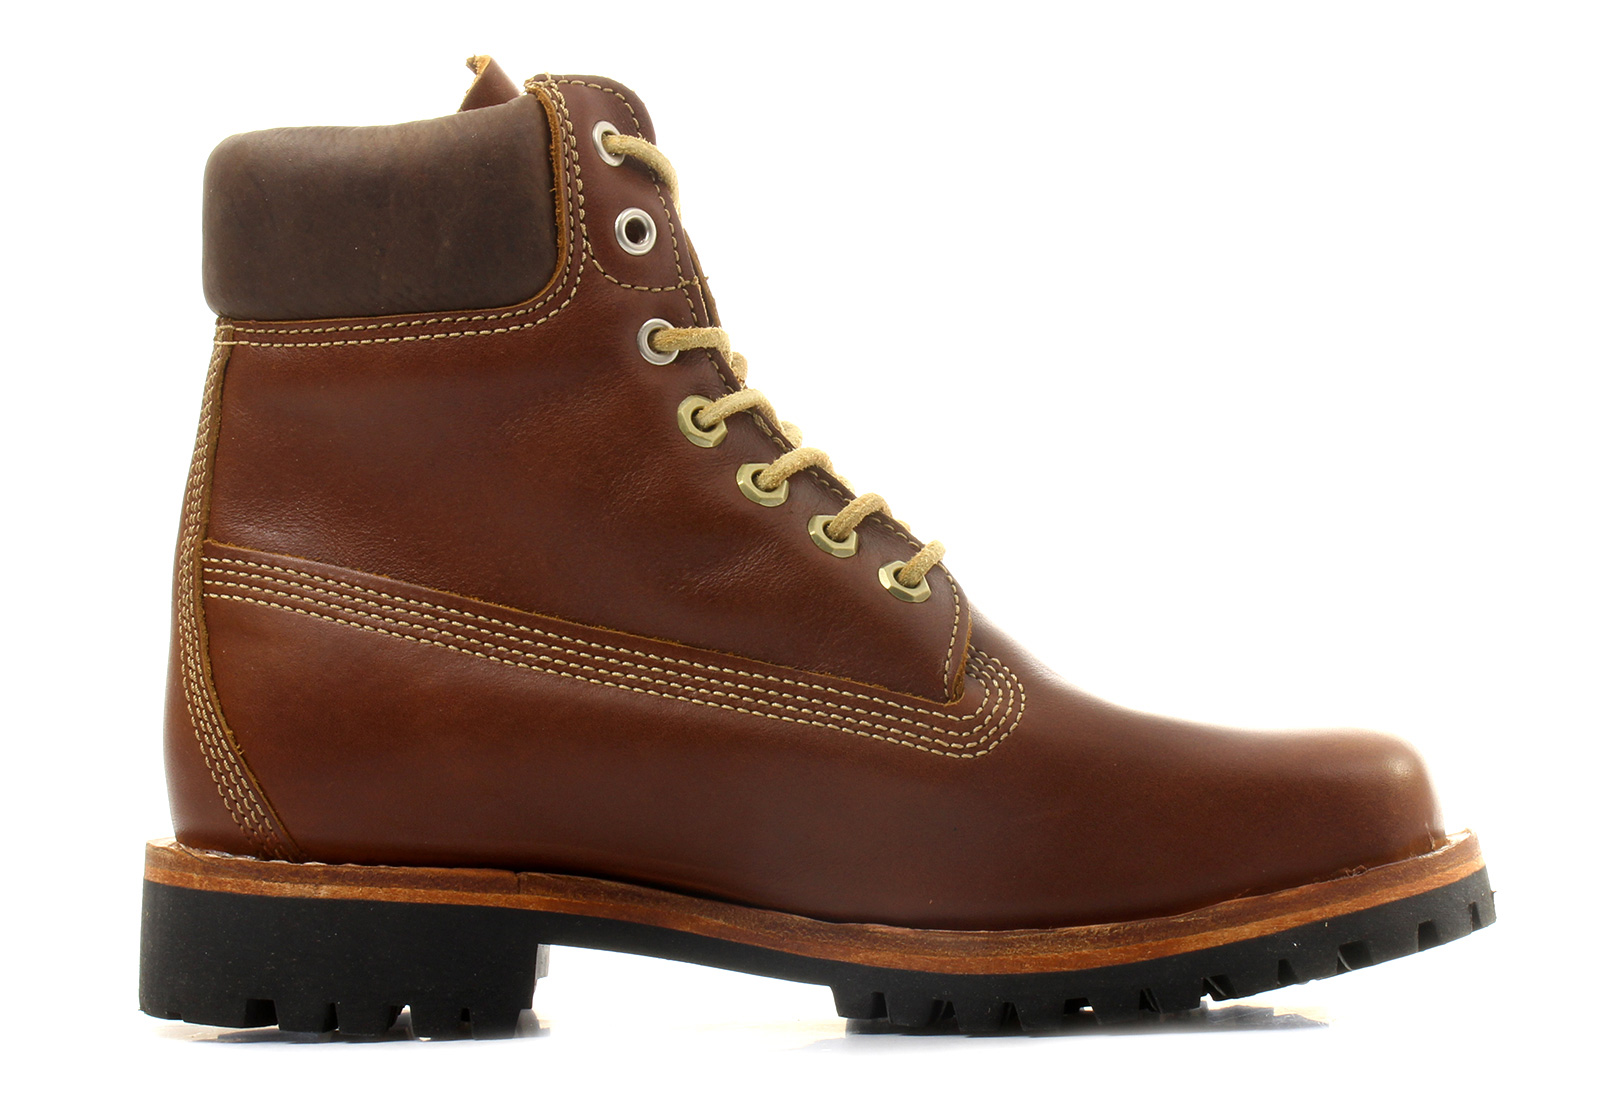 Timberland Boots Heritage Rugged Boot 6849a Lbr